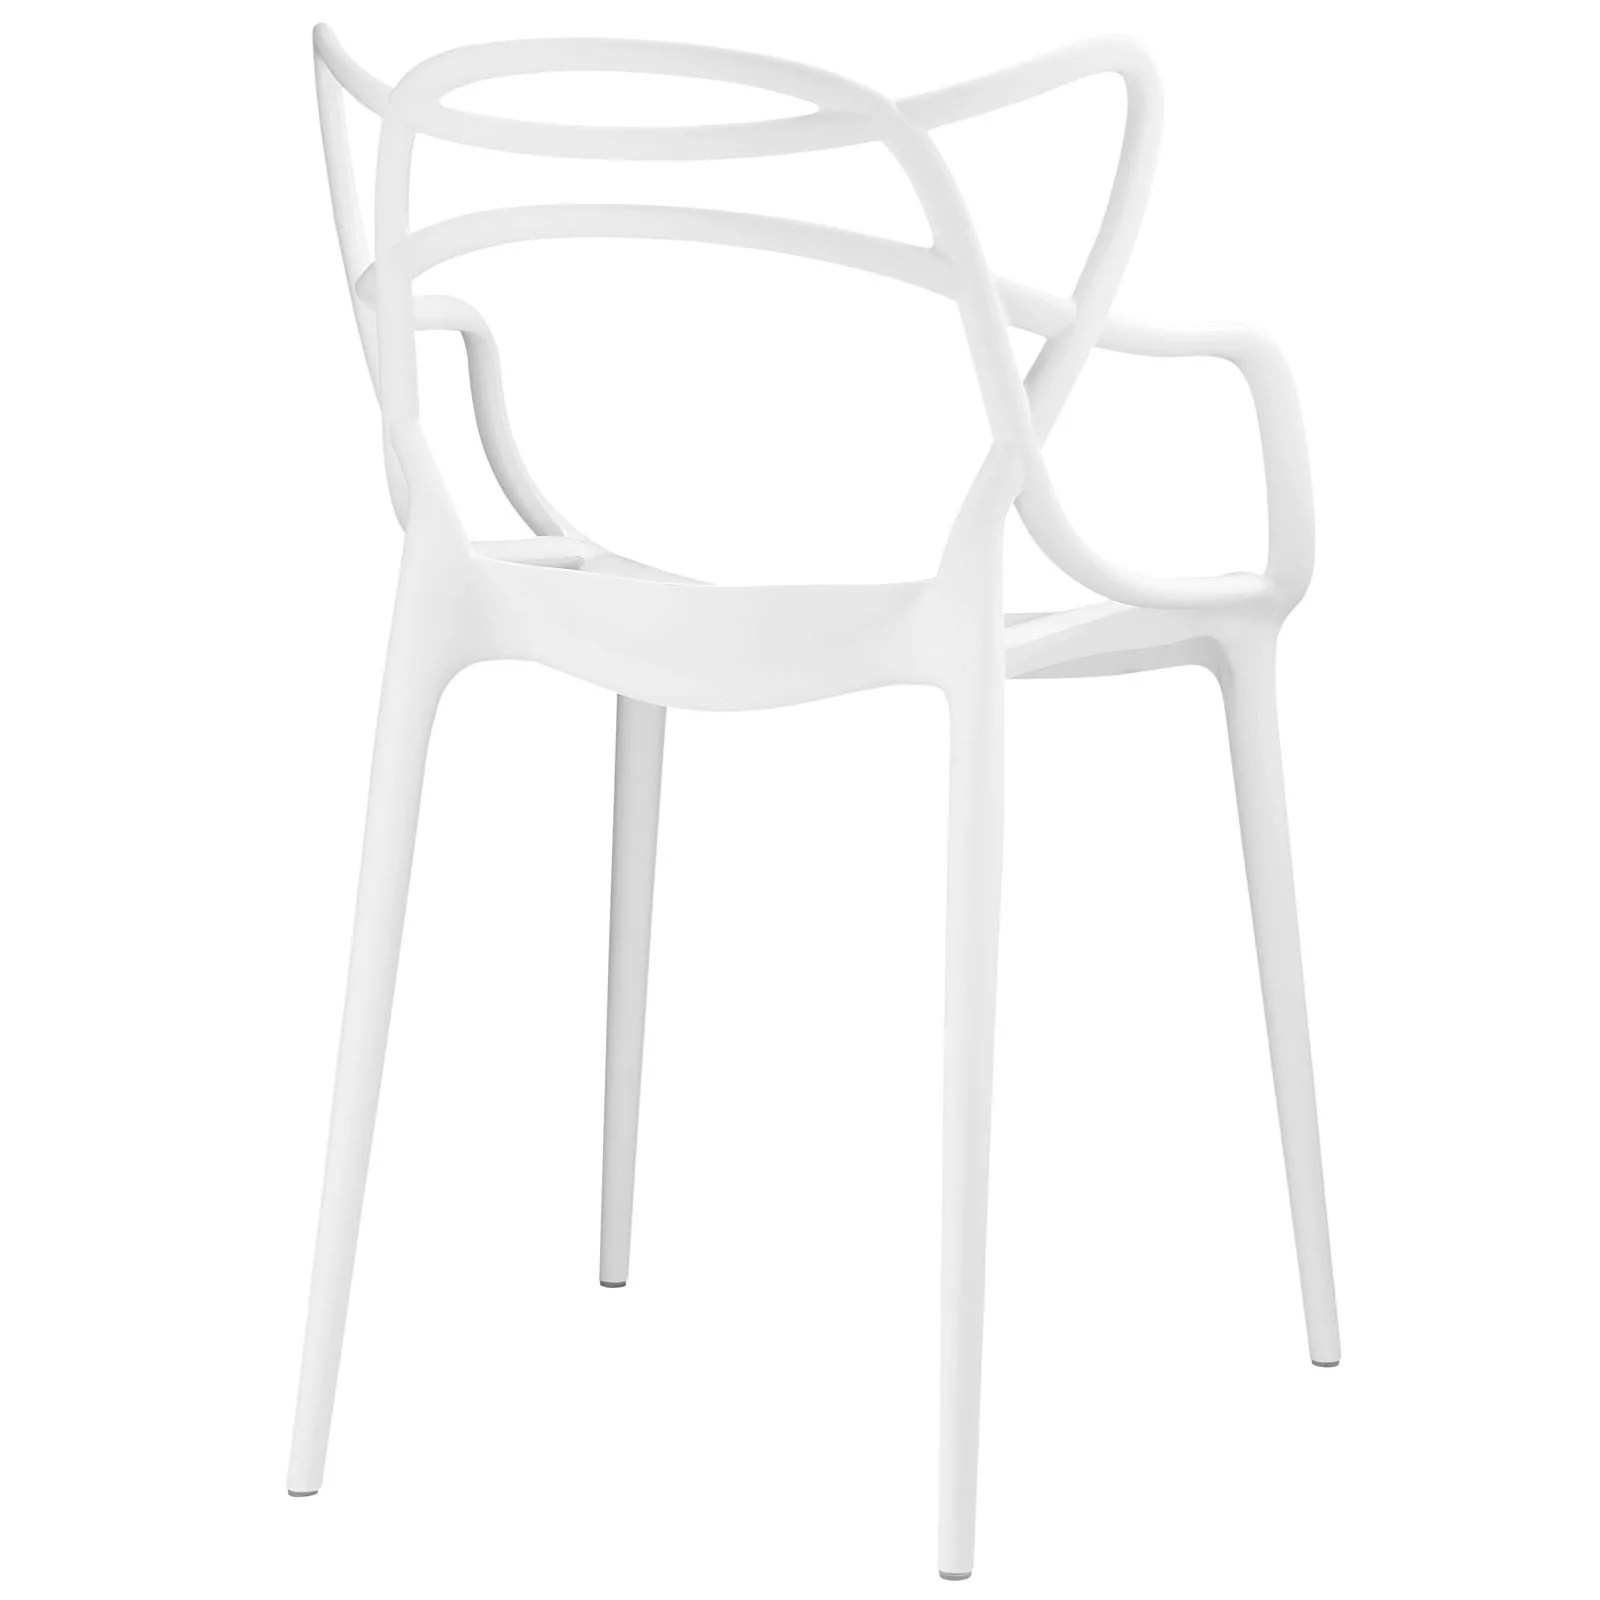 Philippe Starck Masters Chair Reproduction Set Of 2 The Modern Source